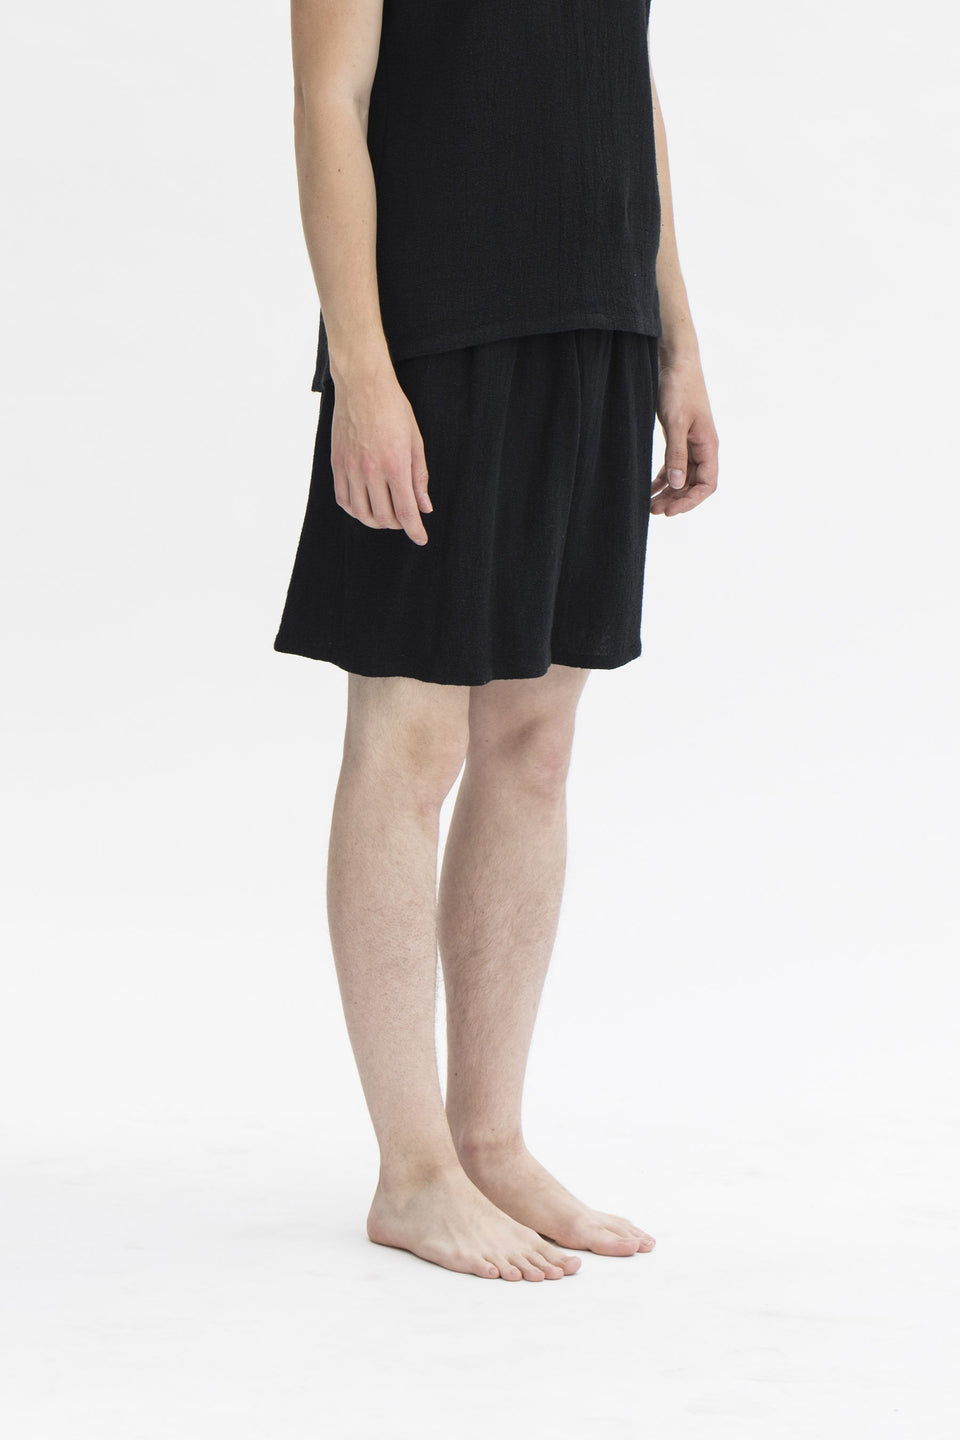 RAW Men Regular Shorts Black L-XL (sample)